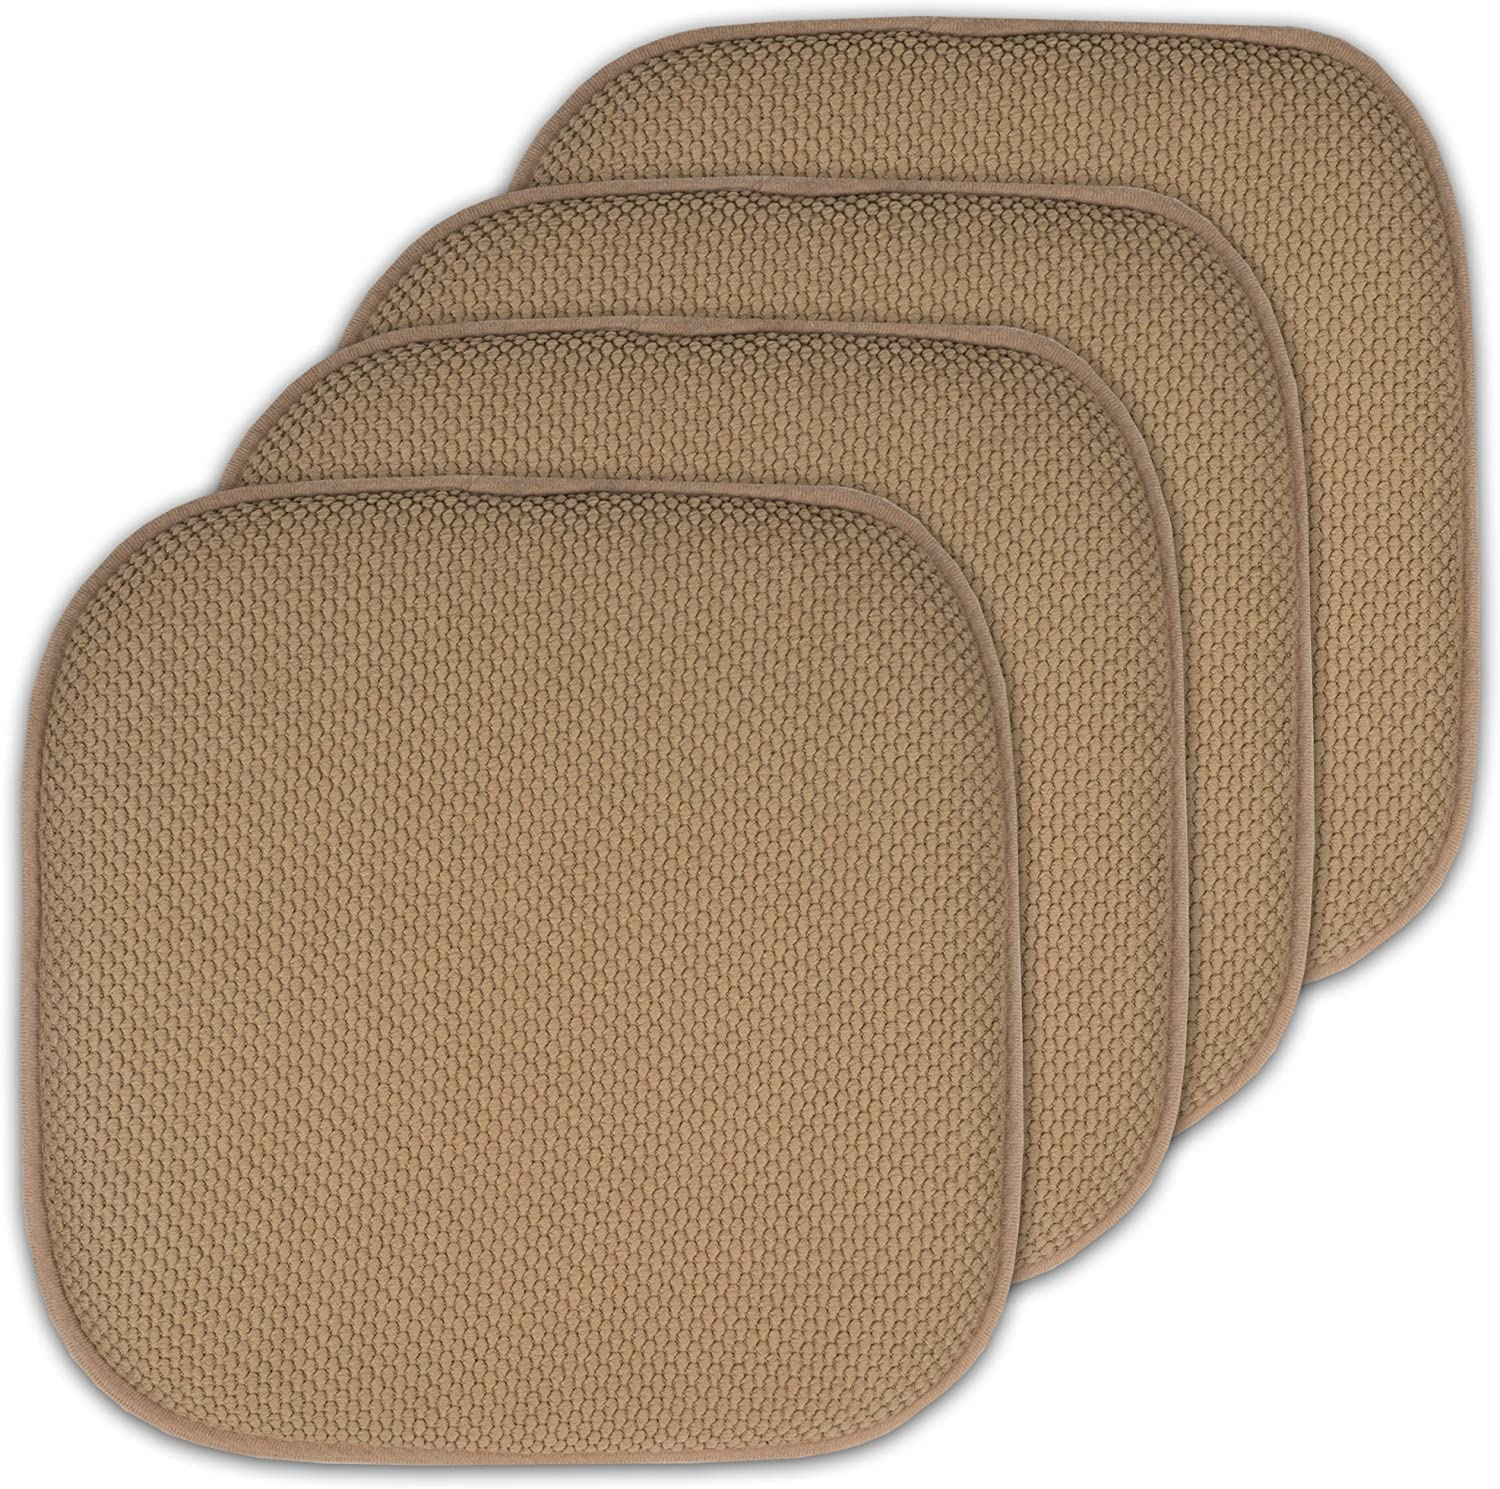 Sweet Home Collection 4 Pack Memory Foam Honeycomb Nonslip Back 16 x16 Chair/Seat Cushion Pad - CPMF-4PK-TAUPE